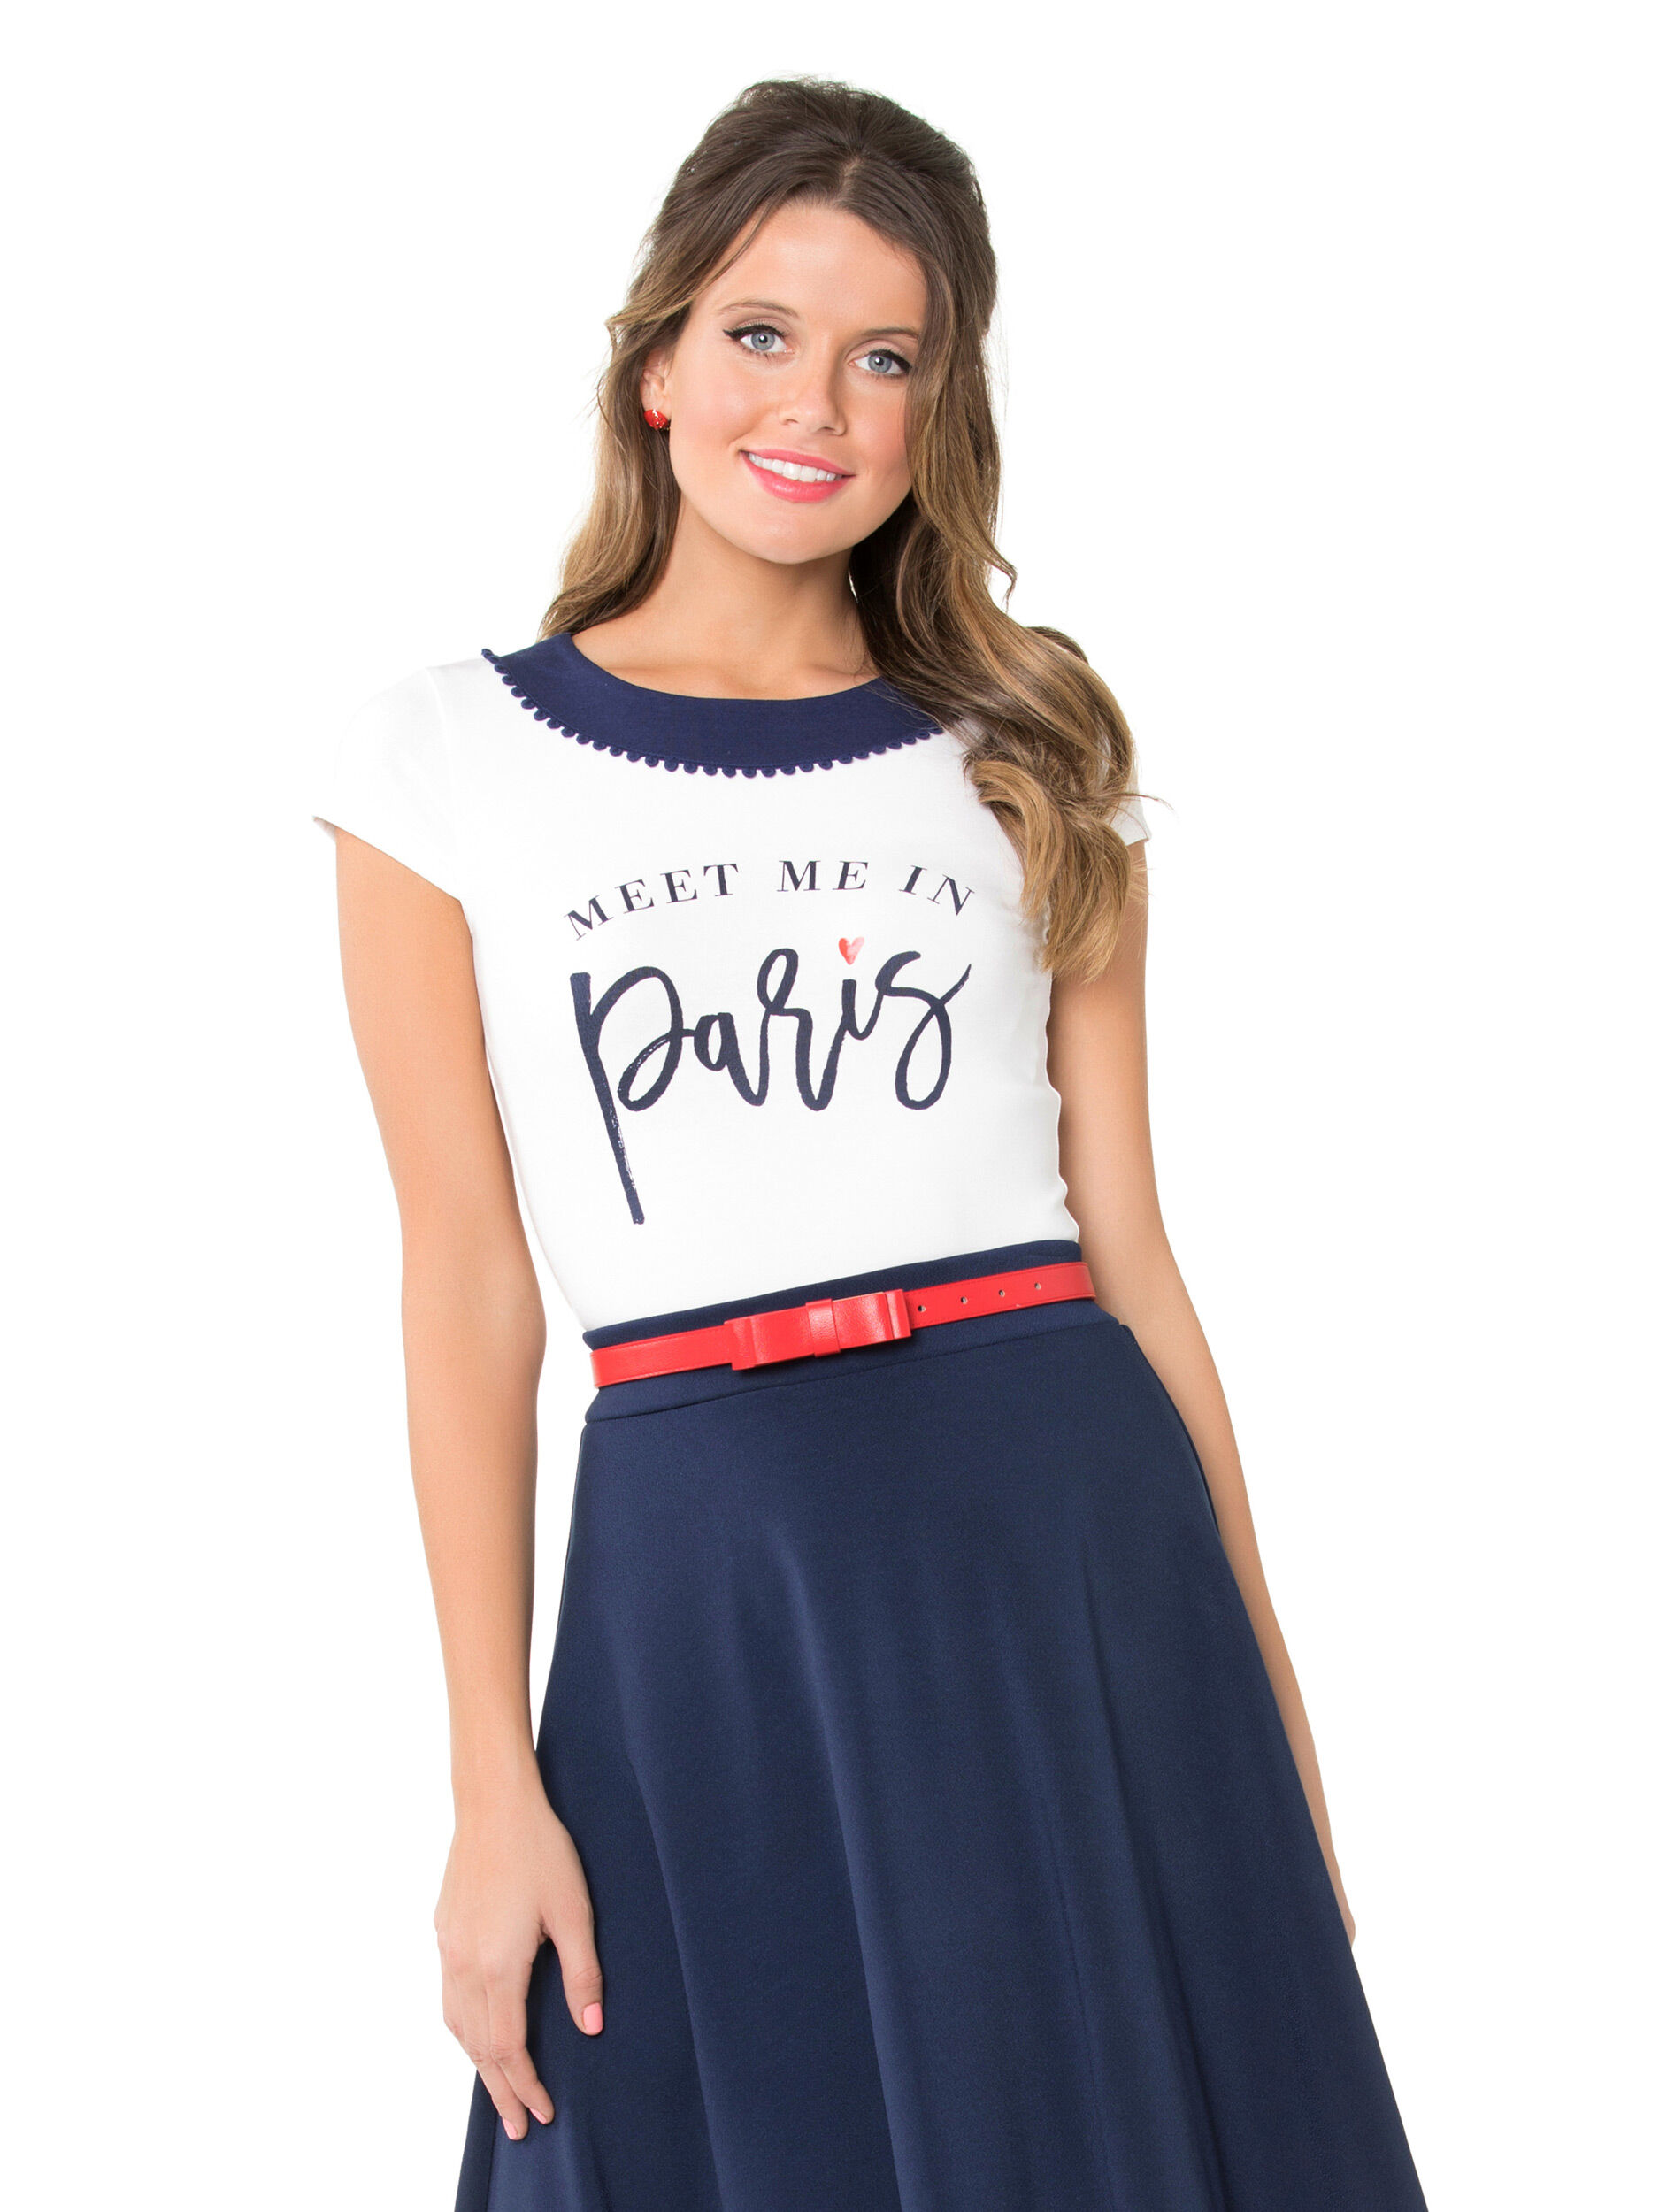 Meet Me In Paris Tee | Shop Tops Online from Review | Review Australia